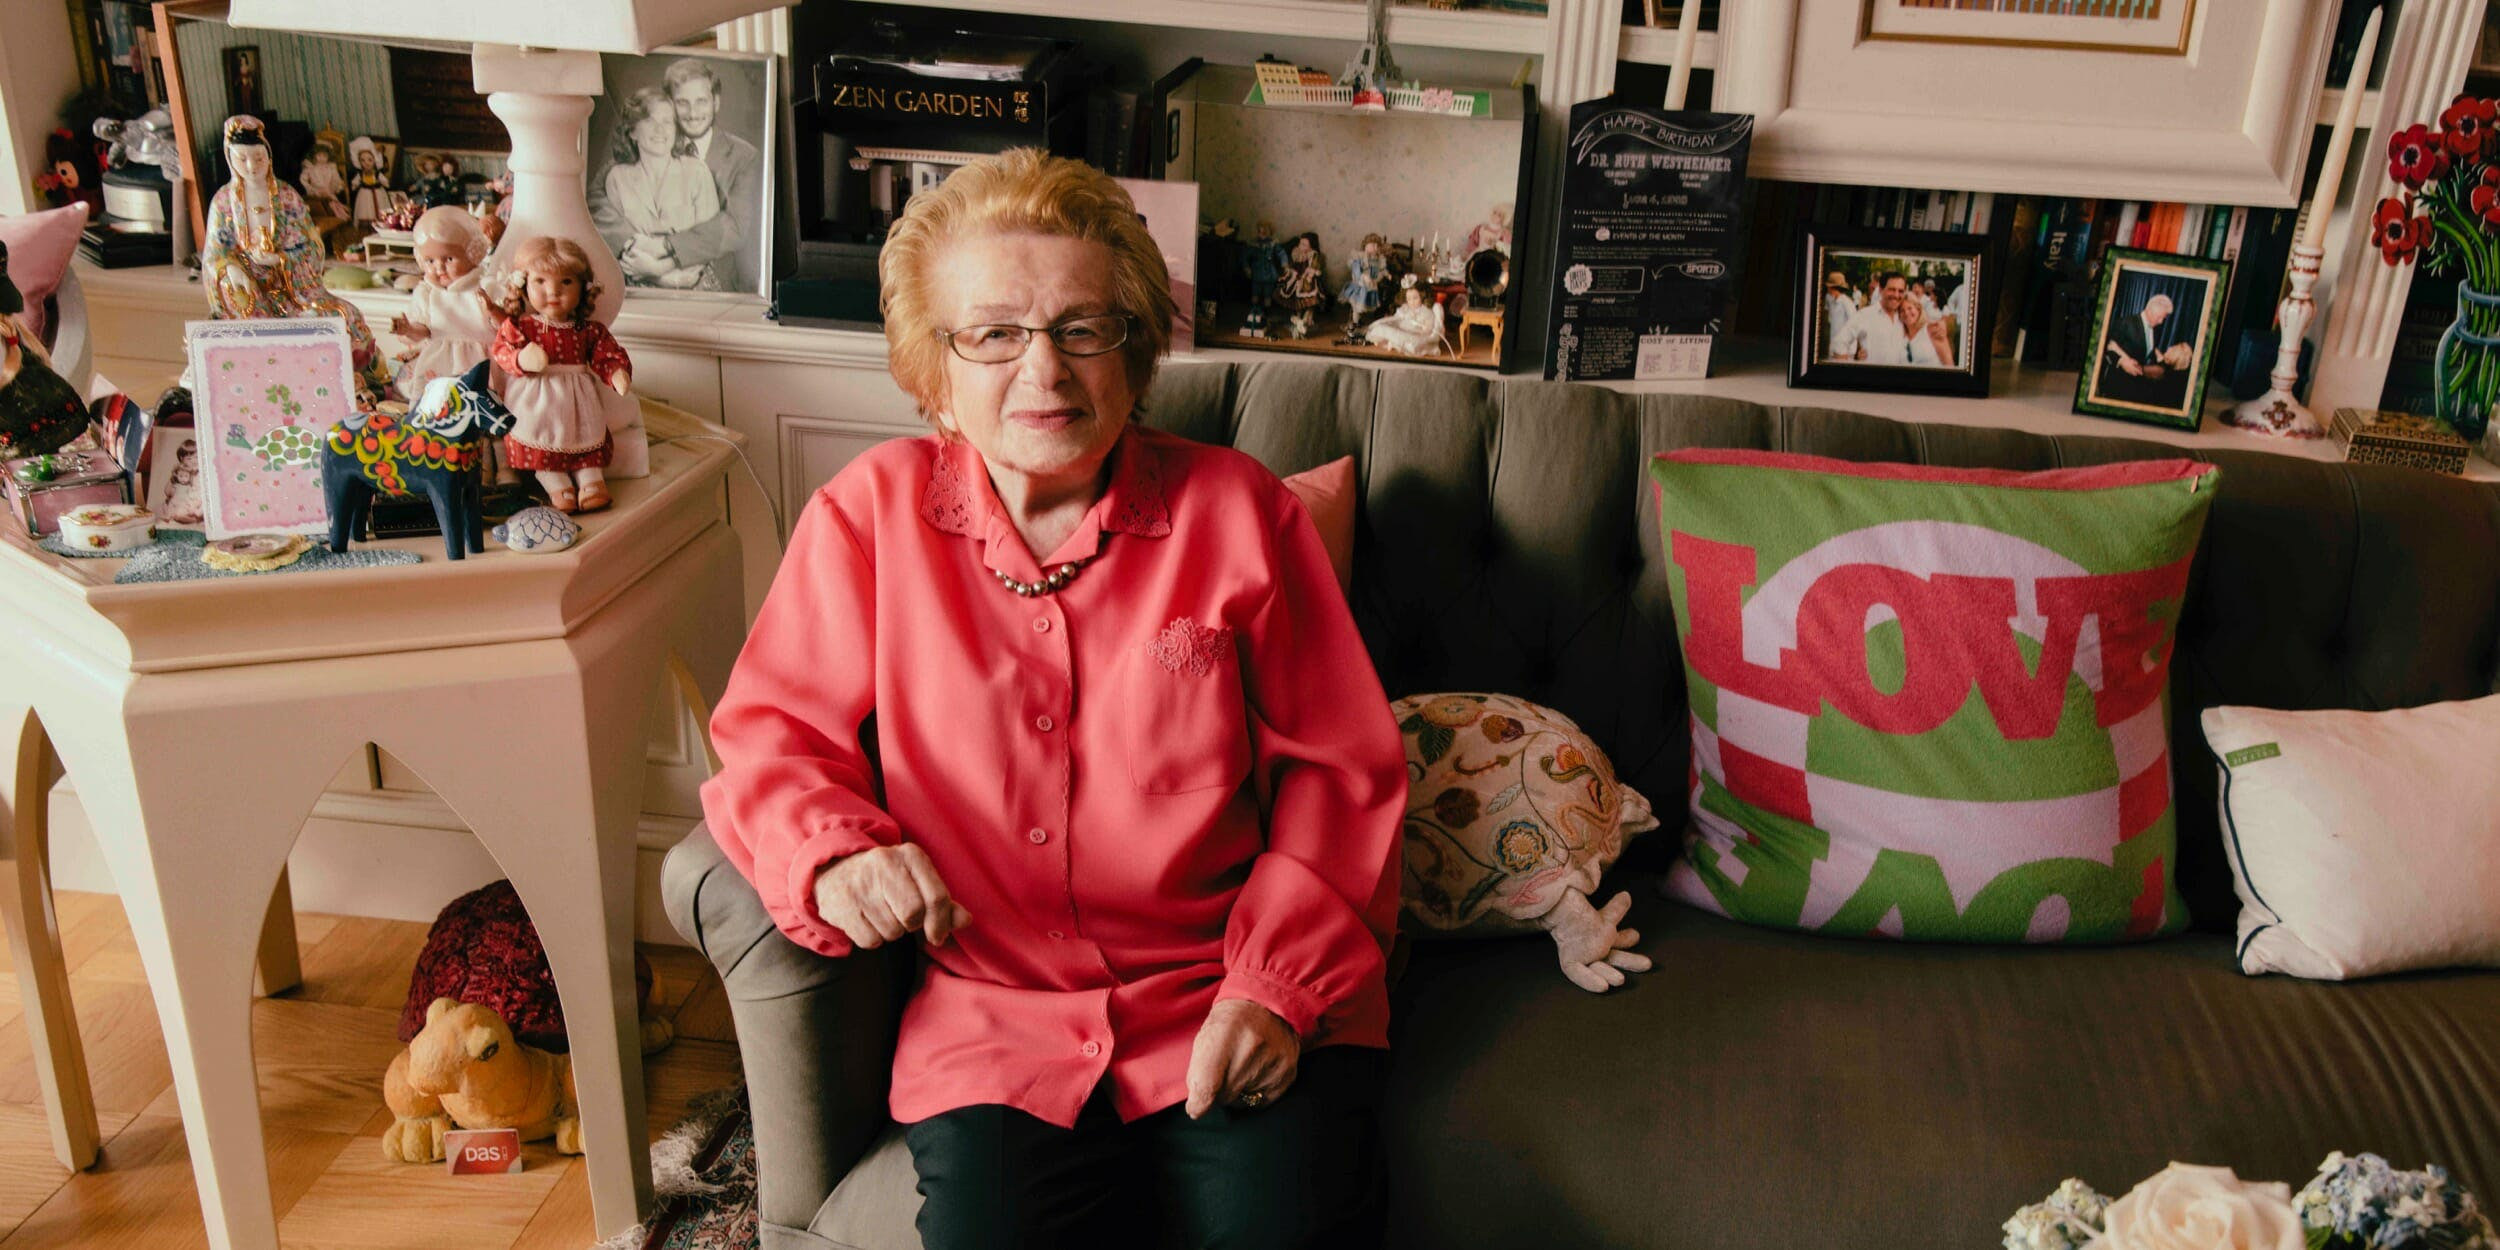 what's new on hulu june 2019 - ask dr. ruth